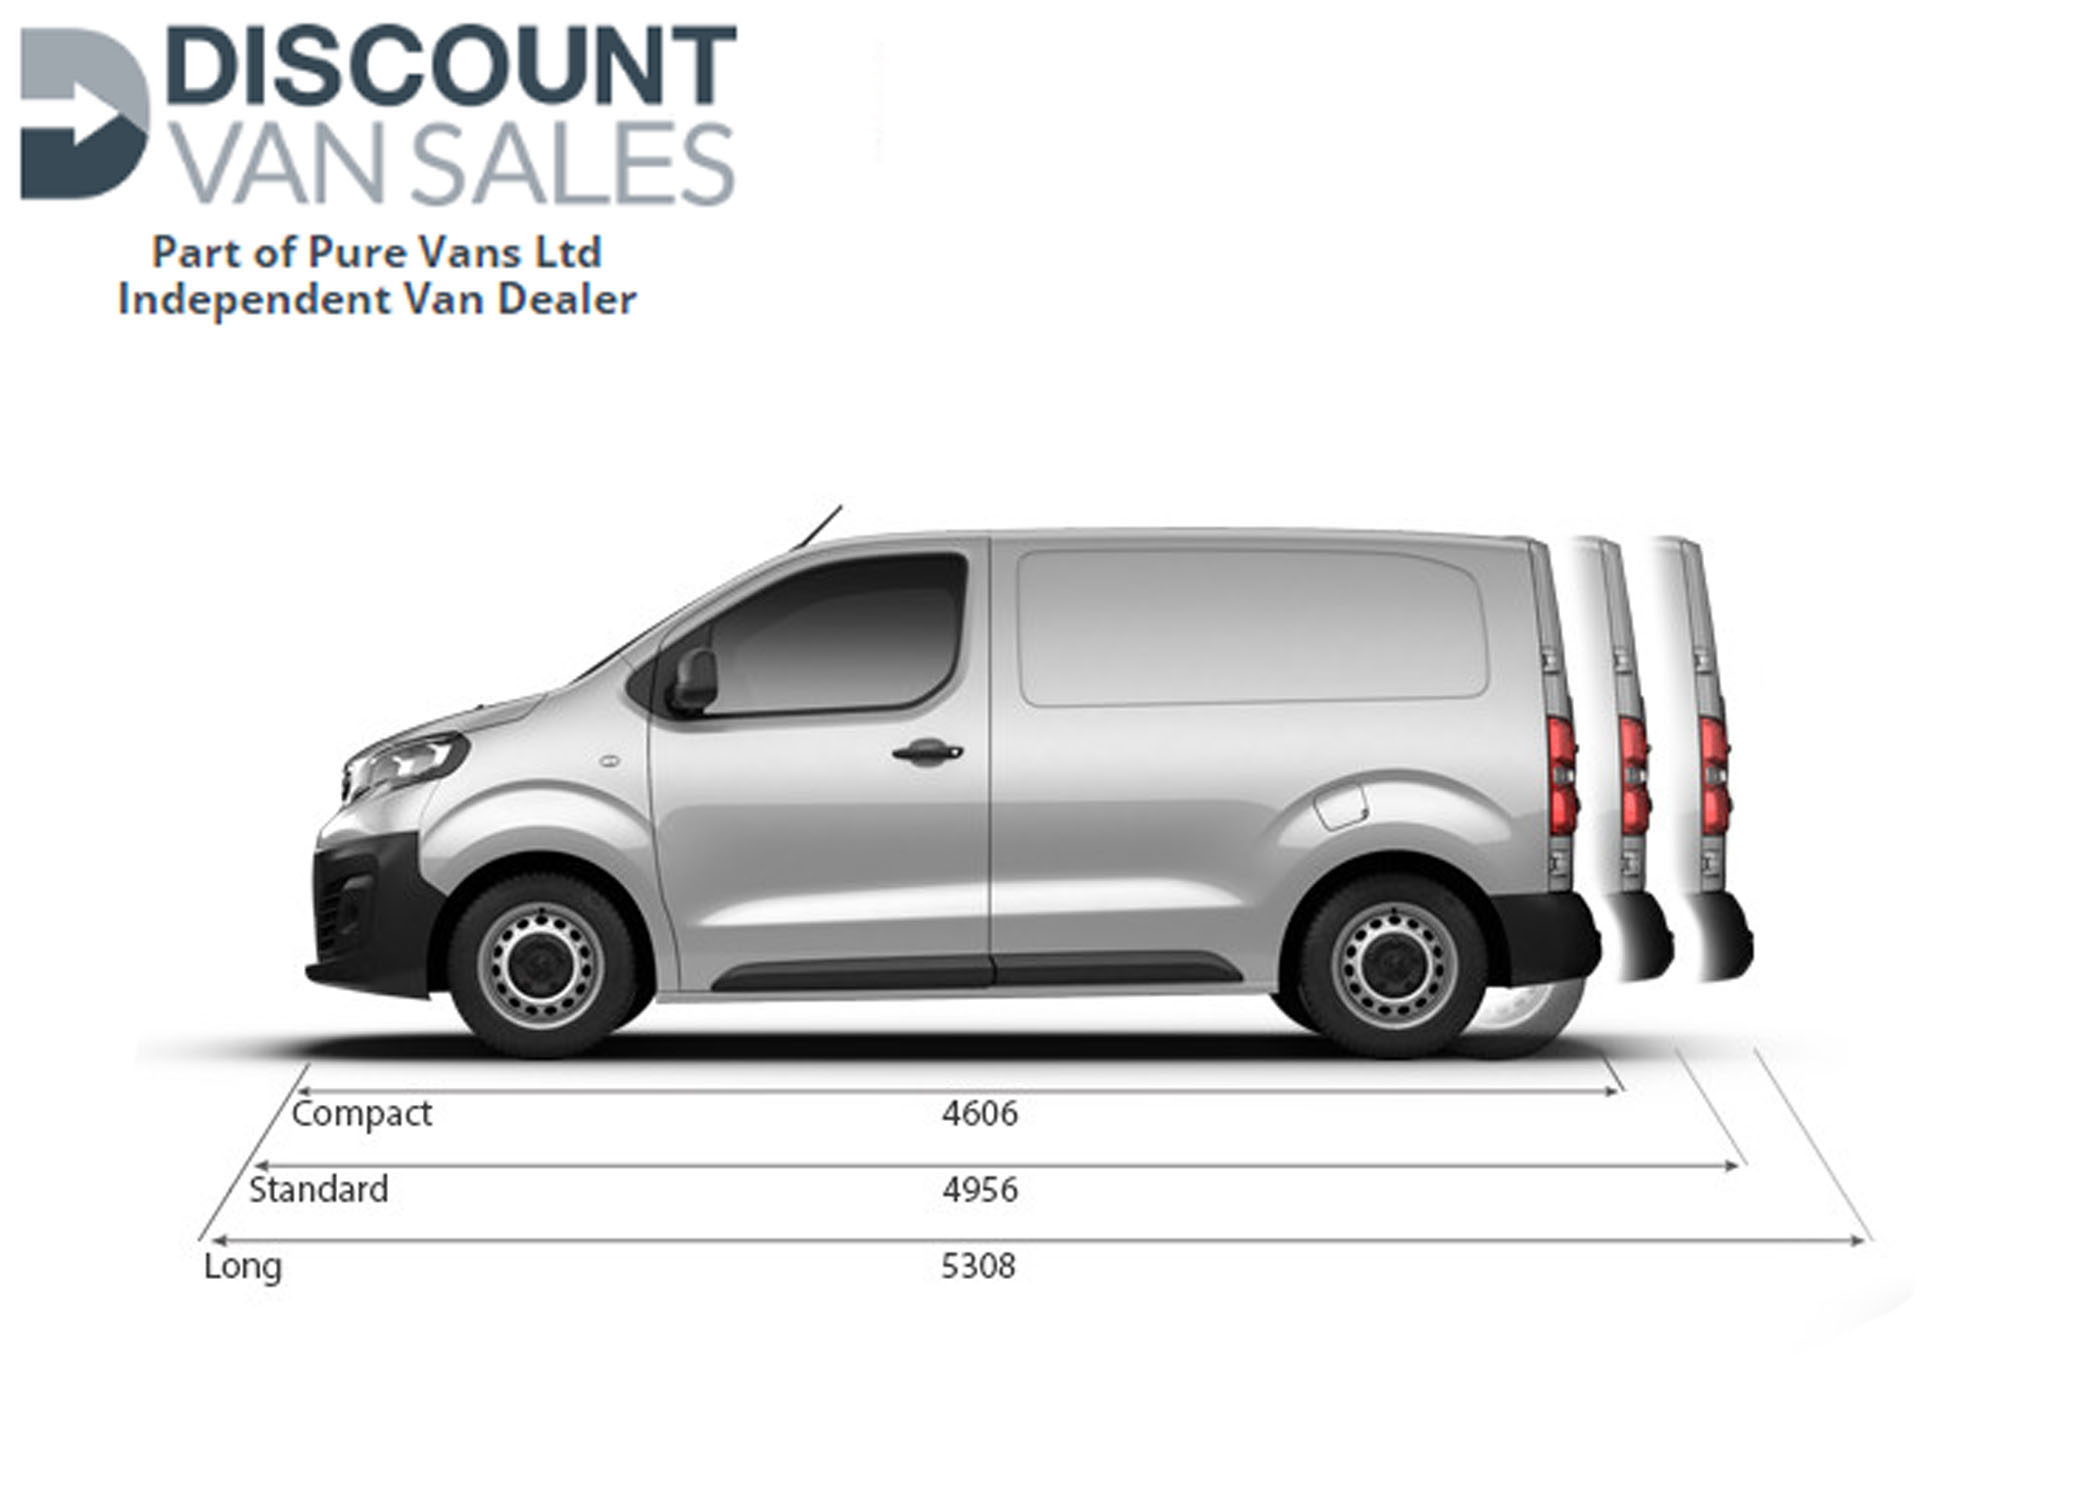 PEUGEOT EXPERT 1.6 BLUEHDI 115 S&S COMPACT PROFESSIONAL side view.jpg